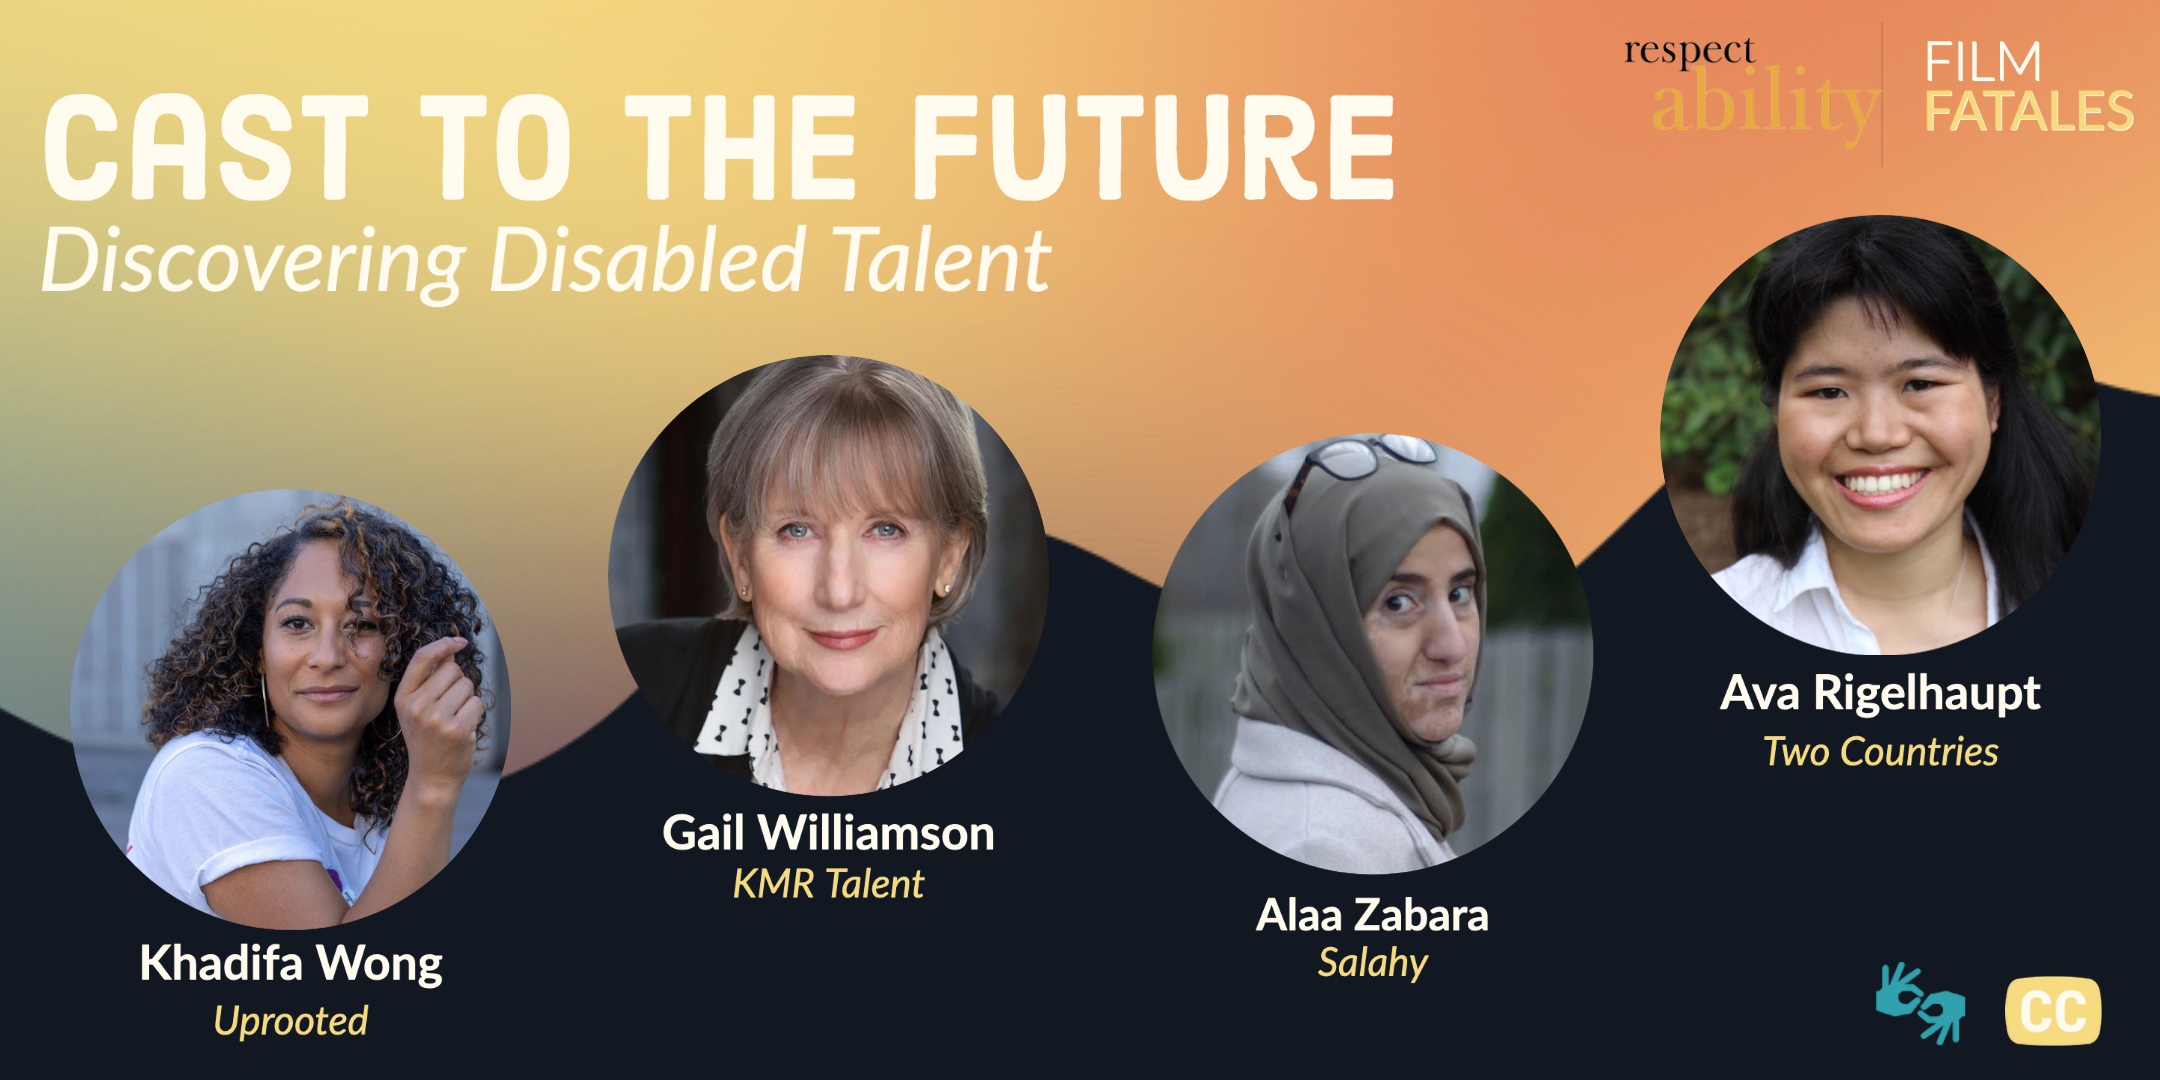 Cast to the Future Discovering Disabled Talent